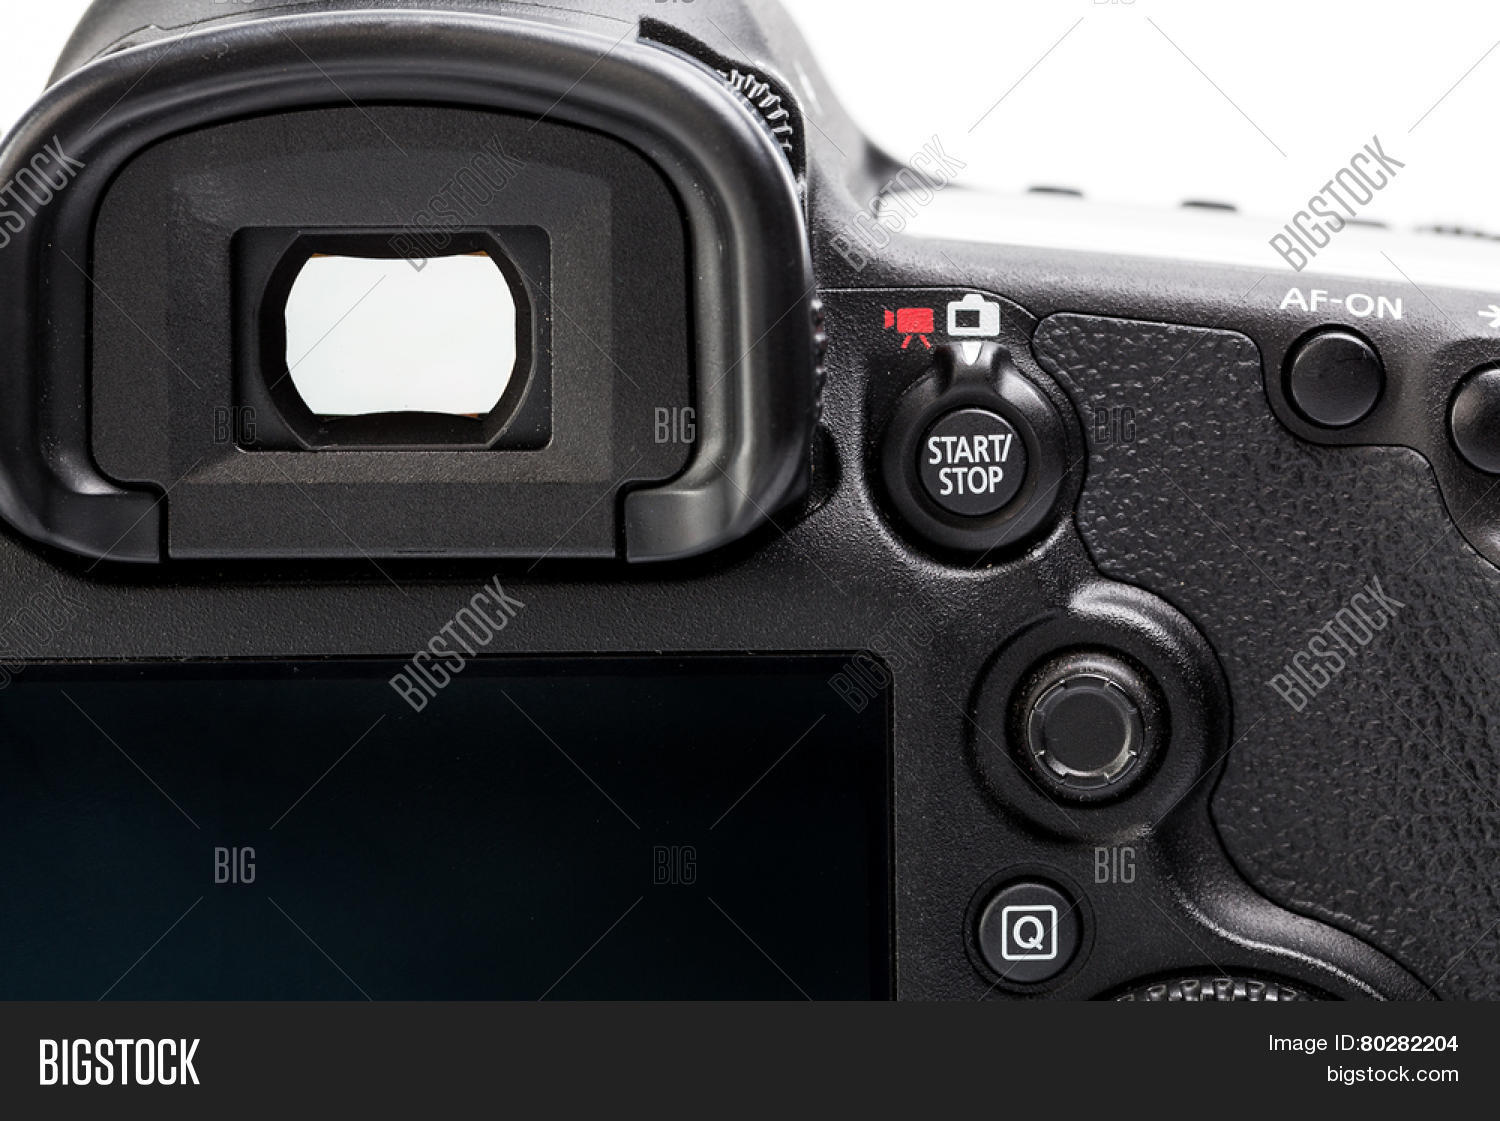 Camera Dslr Camera Info professional modern dslr camera detail of the top lcd with settings shutter speer